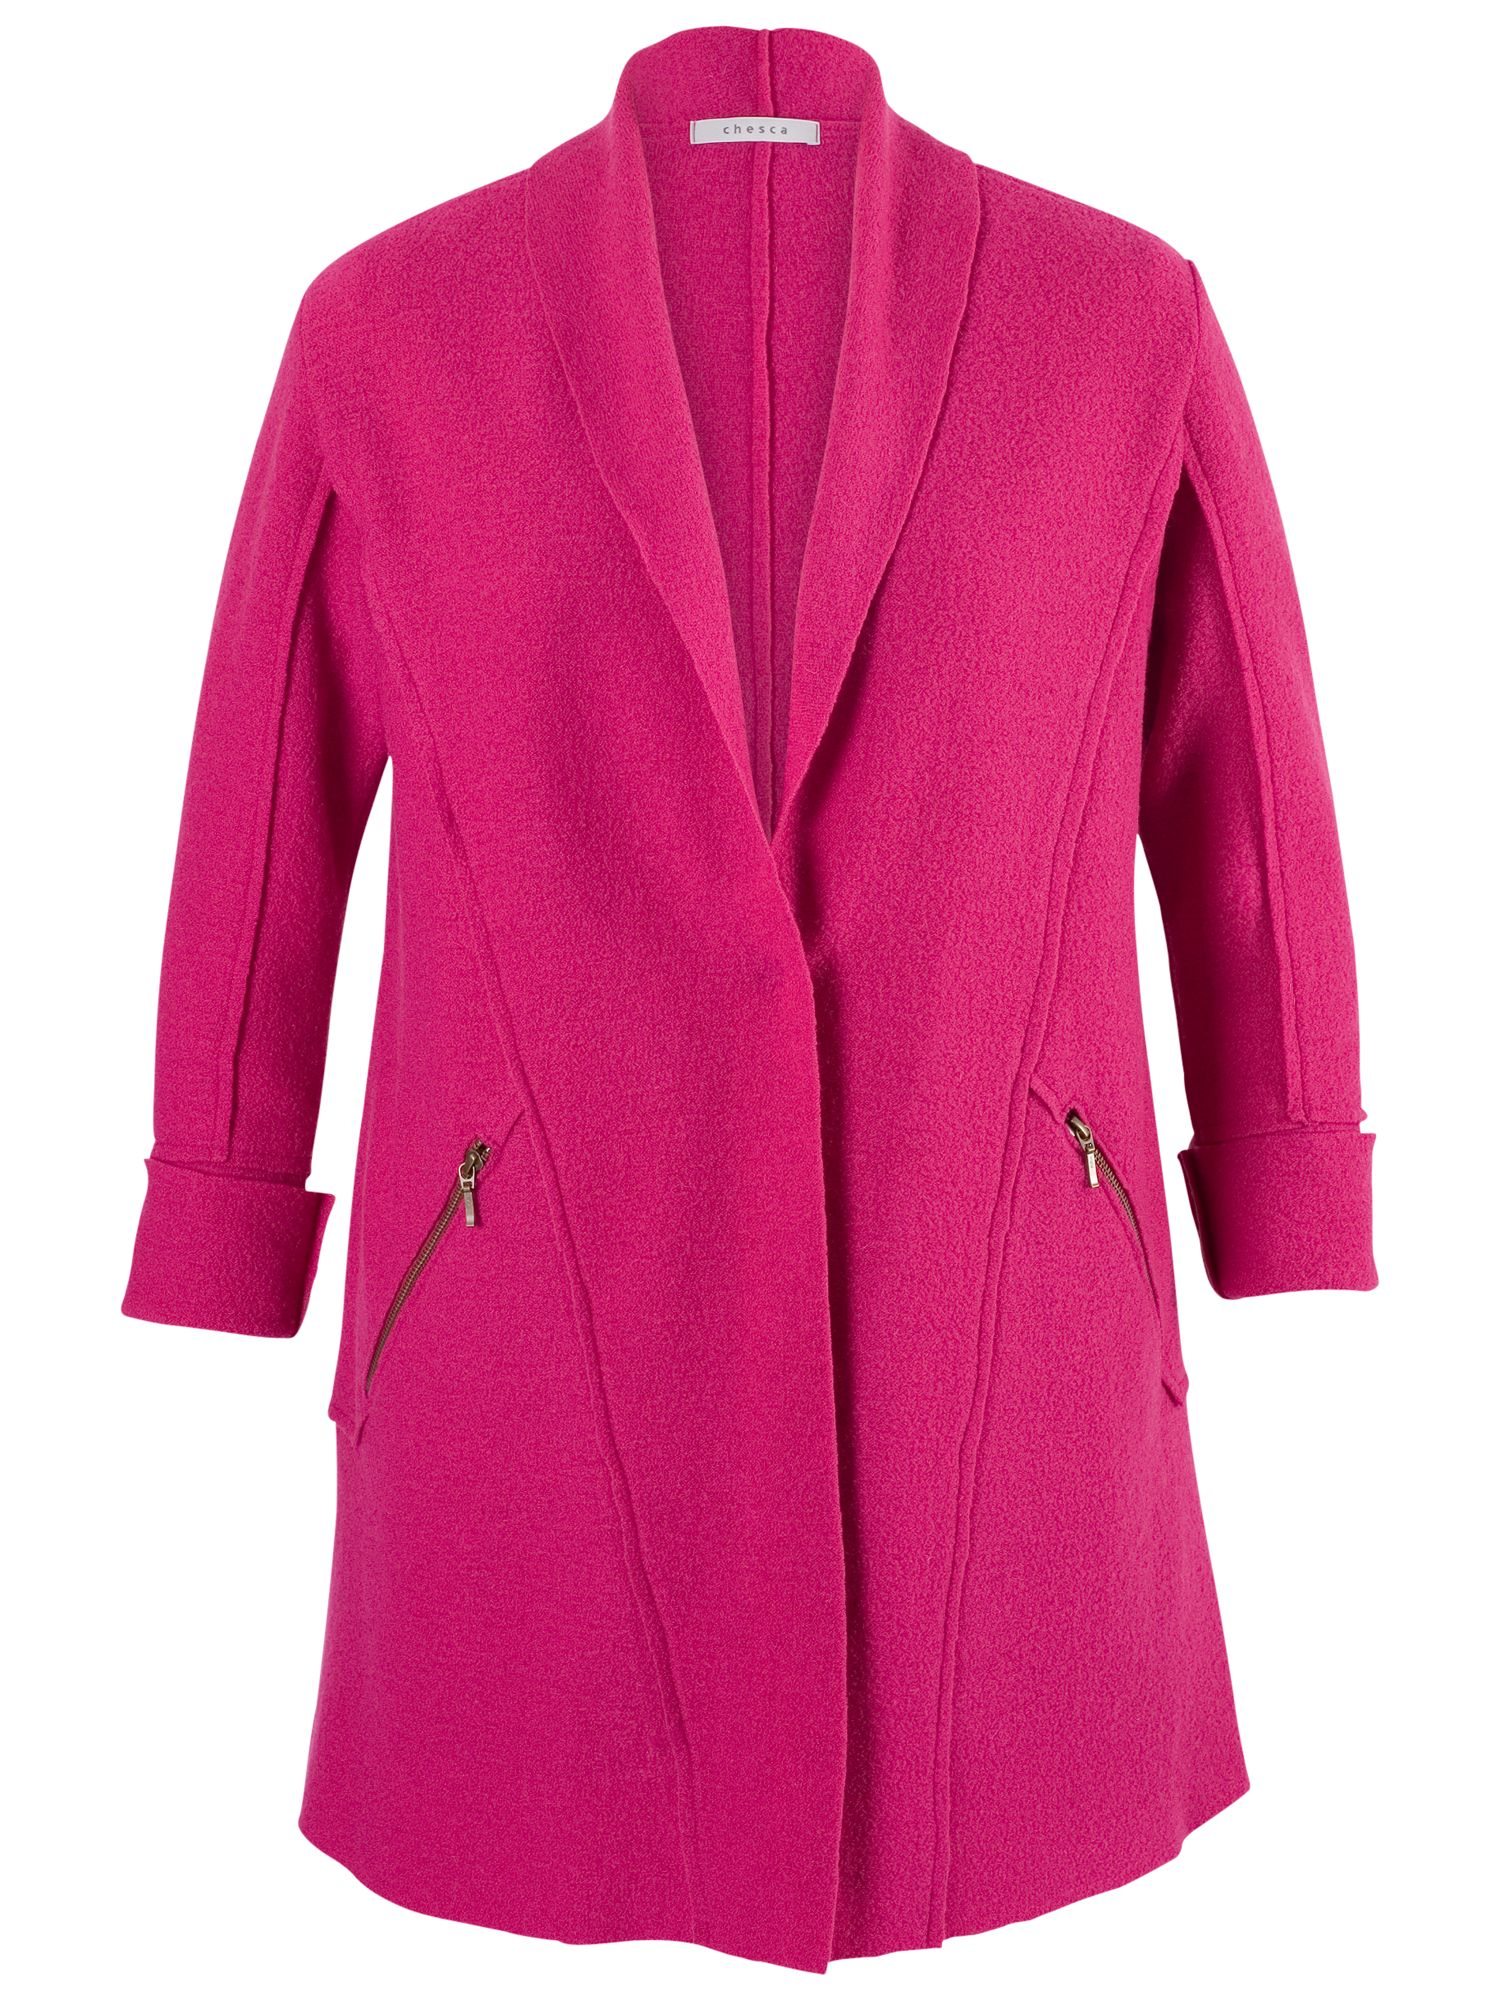 Zip Detail Wool Coat - pattern: plain; collar: shawl/waterfall; fit: loose; style: single breasted; length: mid thigh; predominant colour: hot pink; occasions: casual, creative work; fibres: wool - 100%; sleeve length: 3/4 length; sleeve style: standard; collar break: medium; pattern type: fabric; texture group: woven light midweight; embellishment: zips; season: a/w 2014; wardrobe: highlight; embellishment location: hip